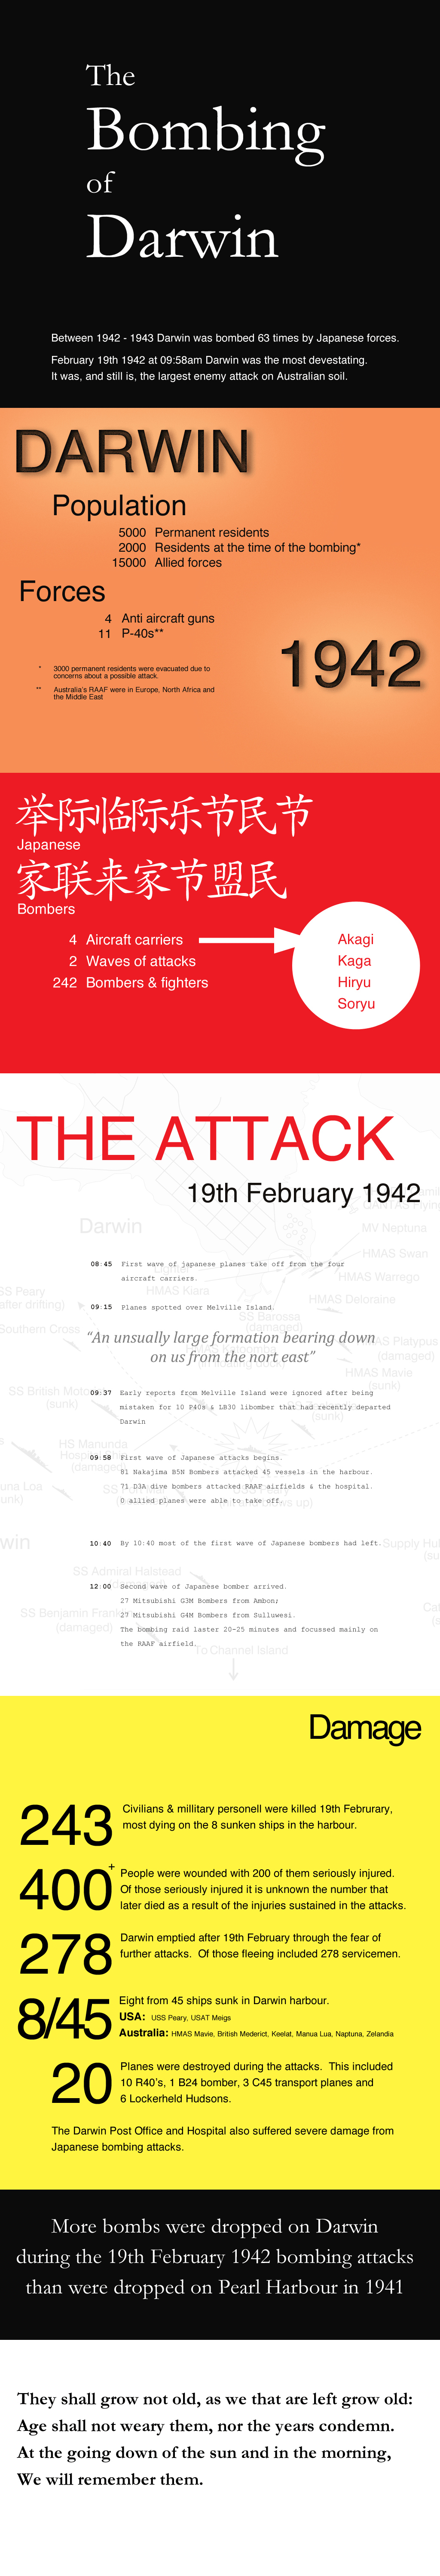 A poster detailing the bombing of Darwin